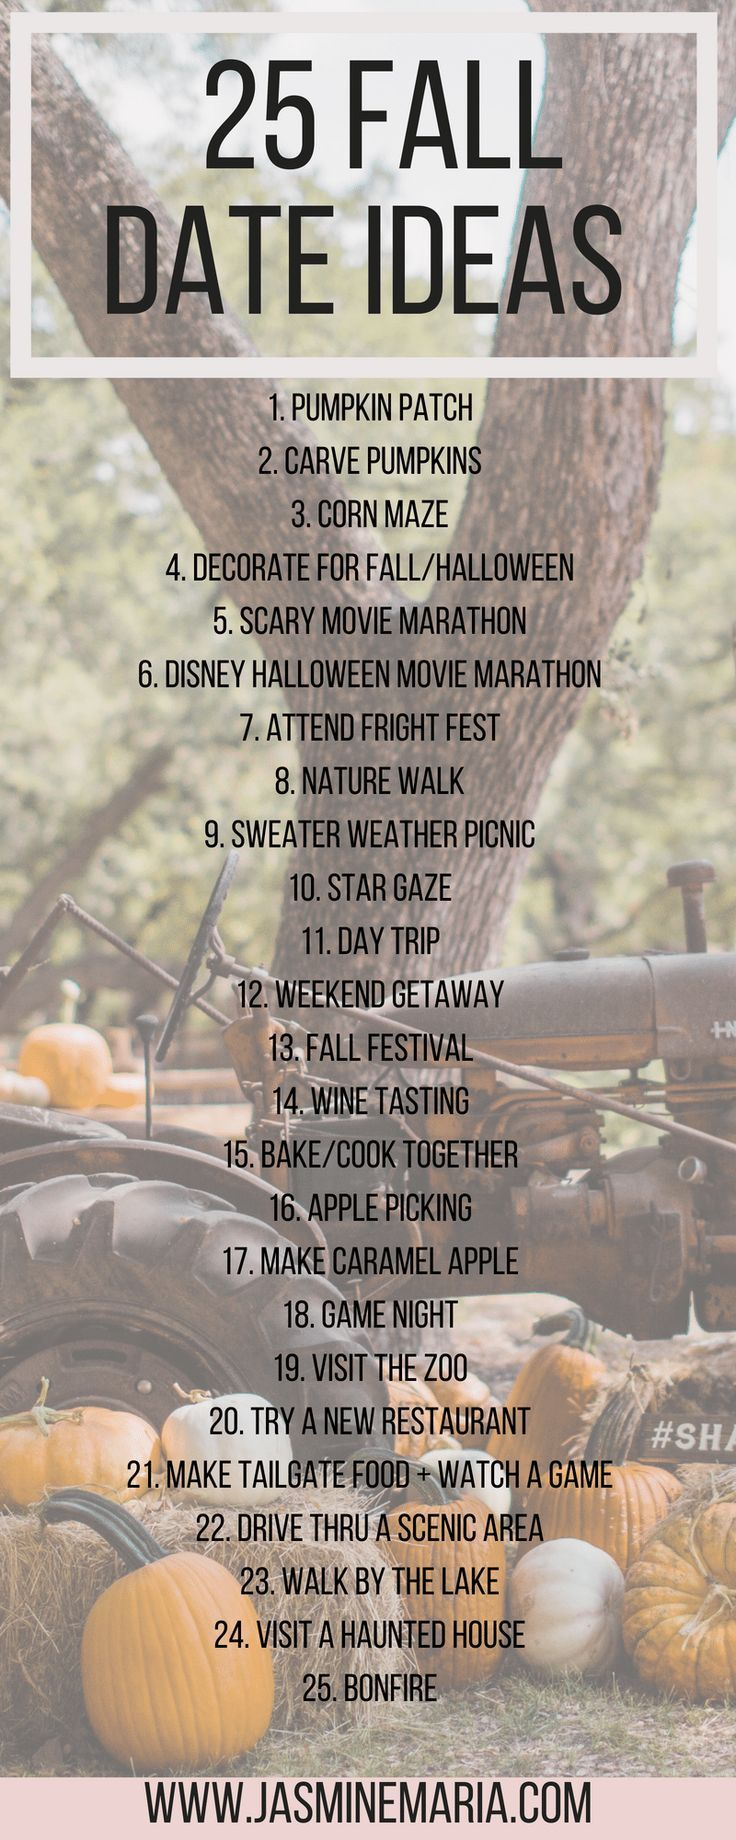 25 Fall Date Ideas Fall dates, Cute date ideas, Date